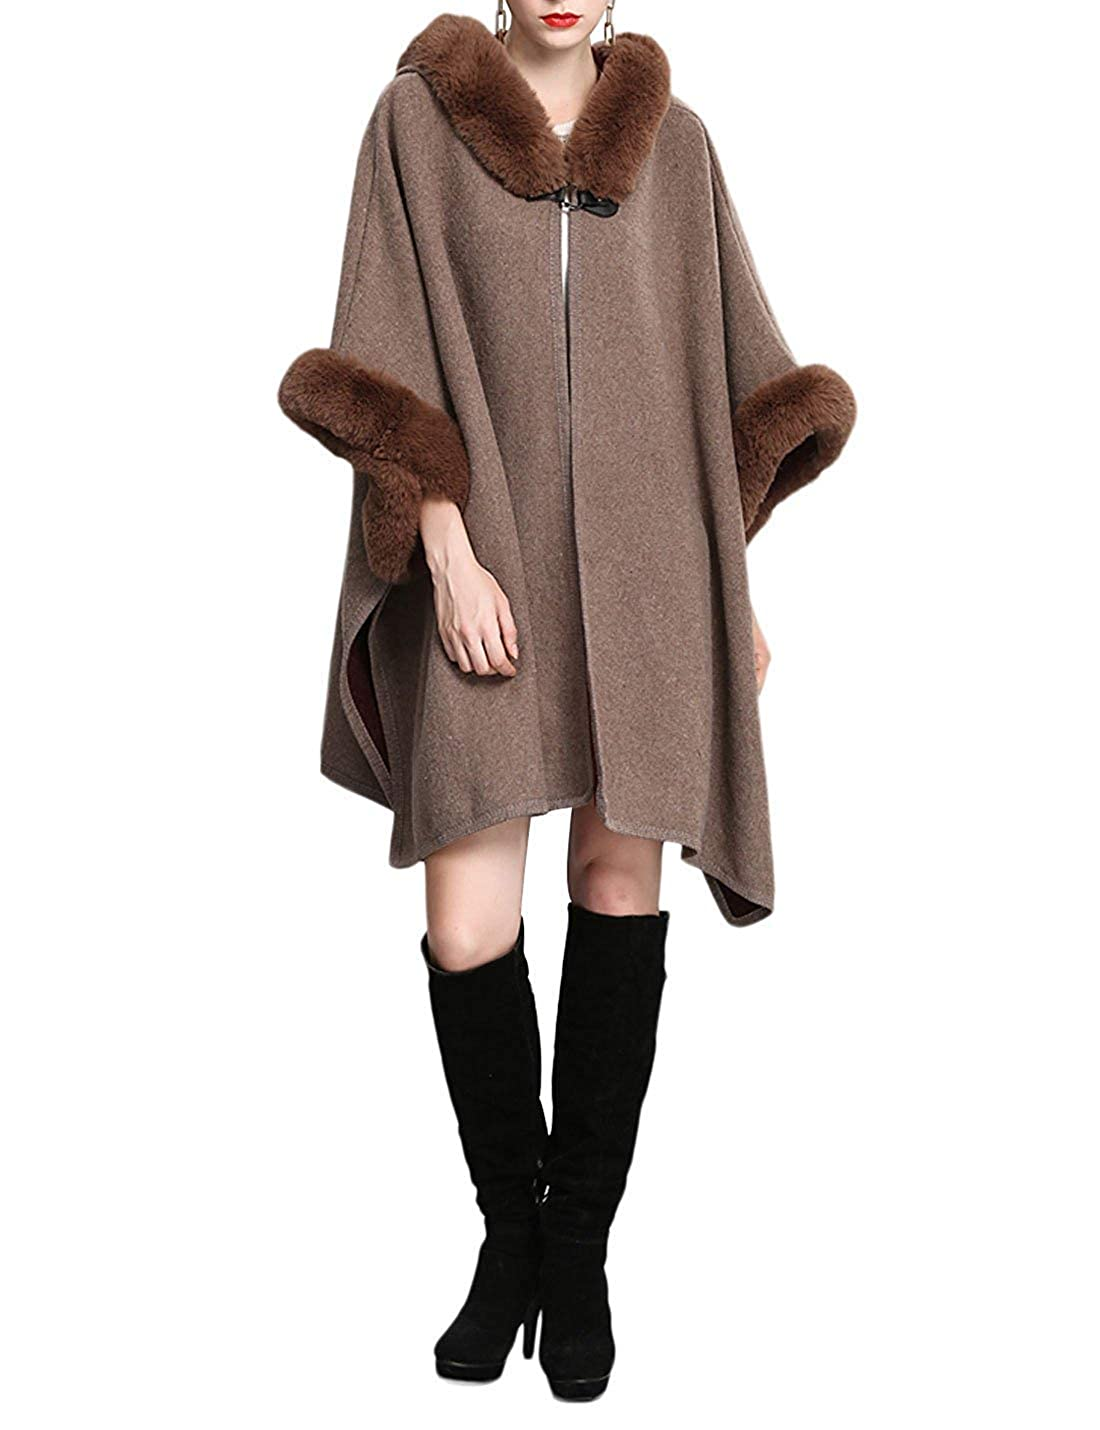 1 NICESOUL Women Oversized Hooded Fur Collar Cashmere Feel Poncho Capes Outwear Cloak Coat